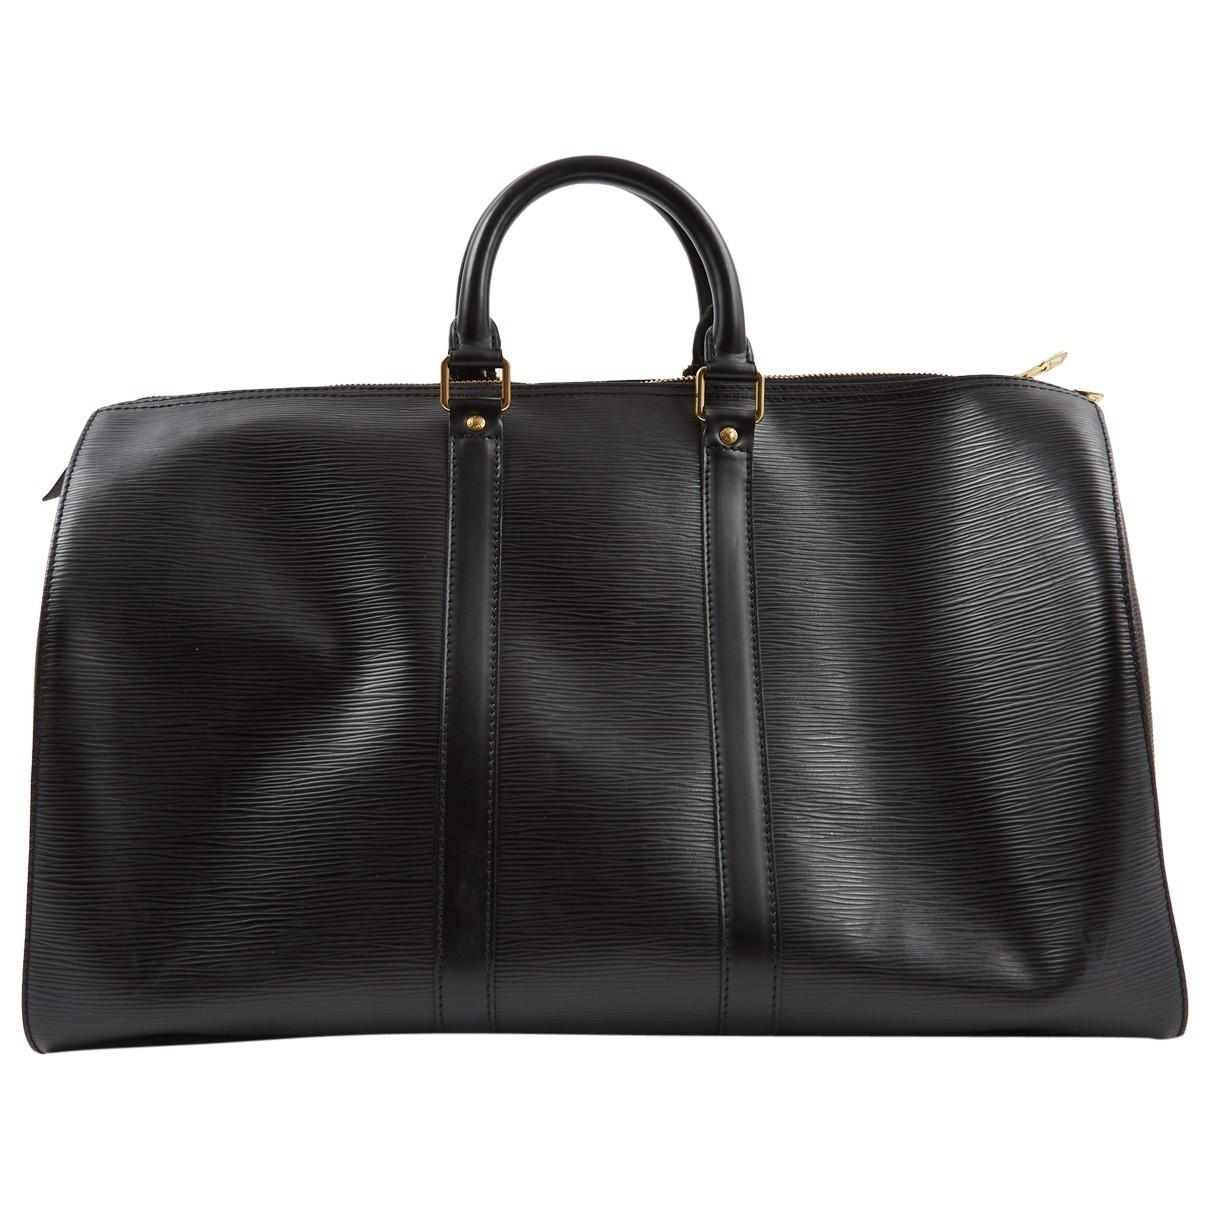 a2cb1bc584cd Lyst - Louis Vuitton Keepall Leather Bag in Black for Men